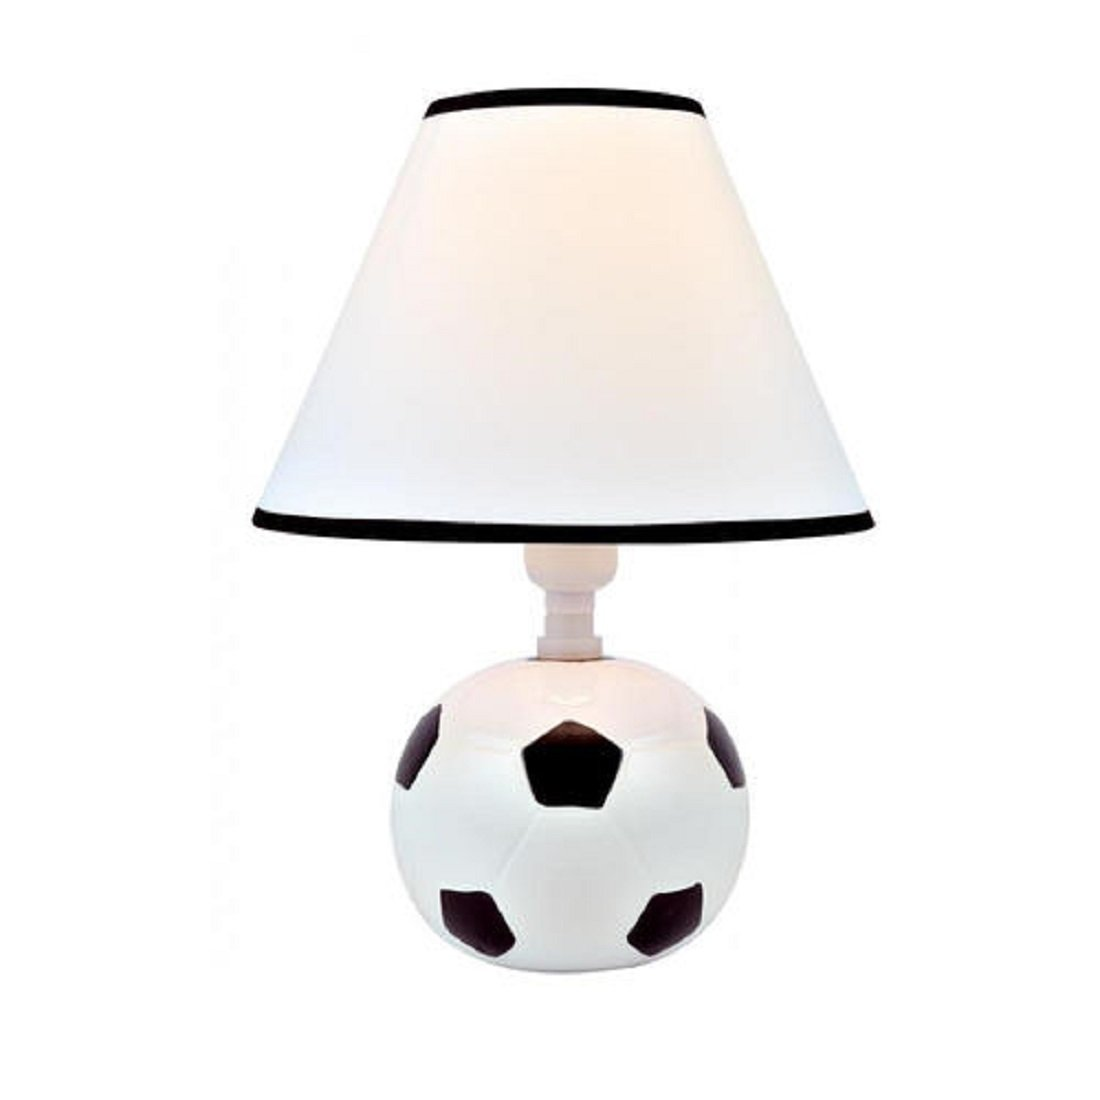 Soccer Ball Shaped White Table Lamp - Sports Themed - 9'' W